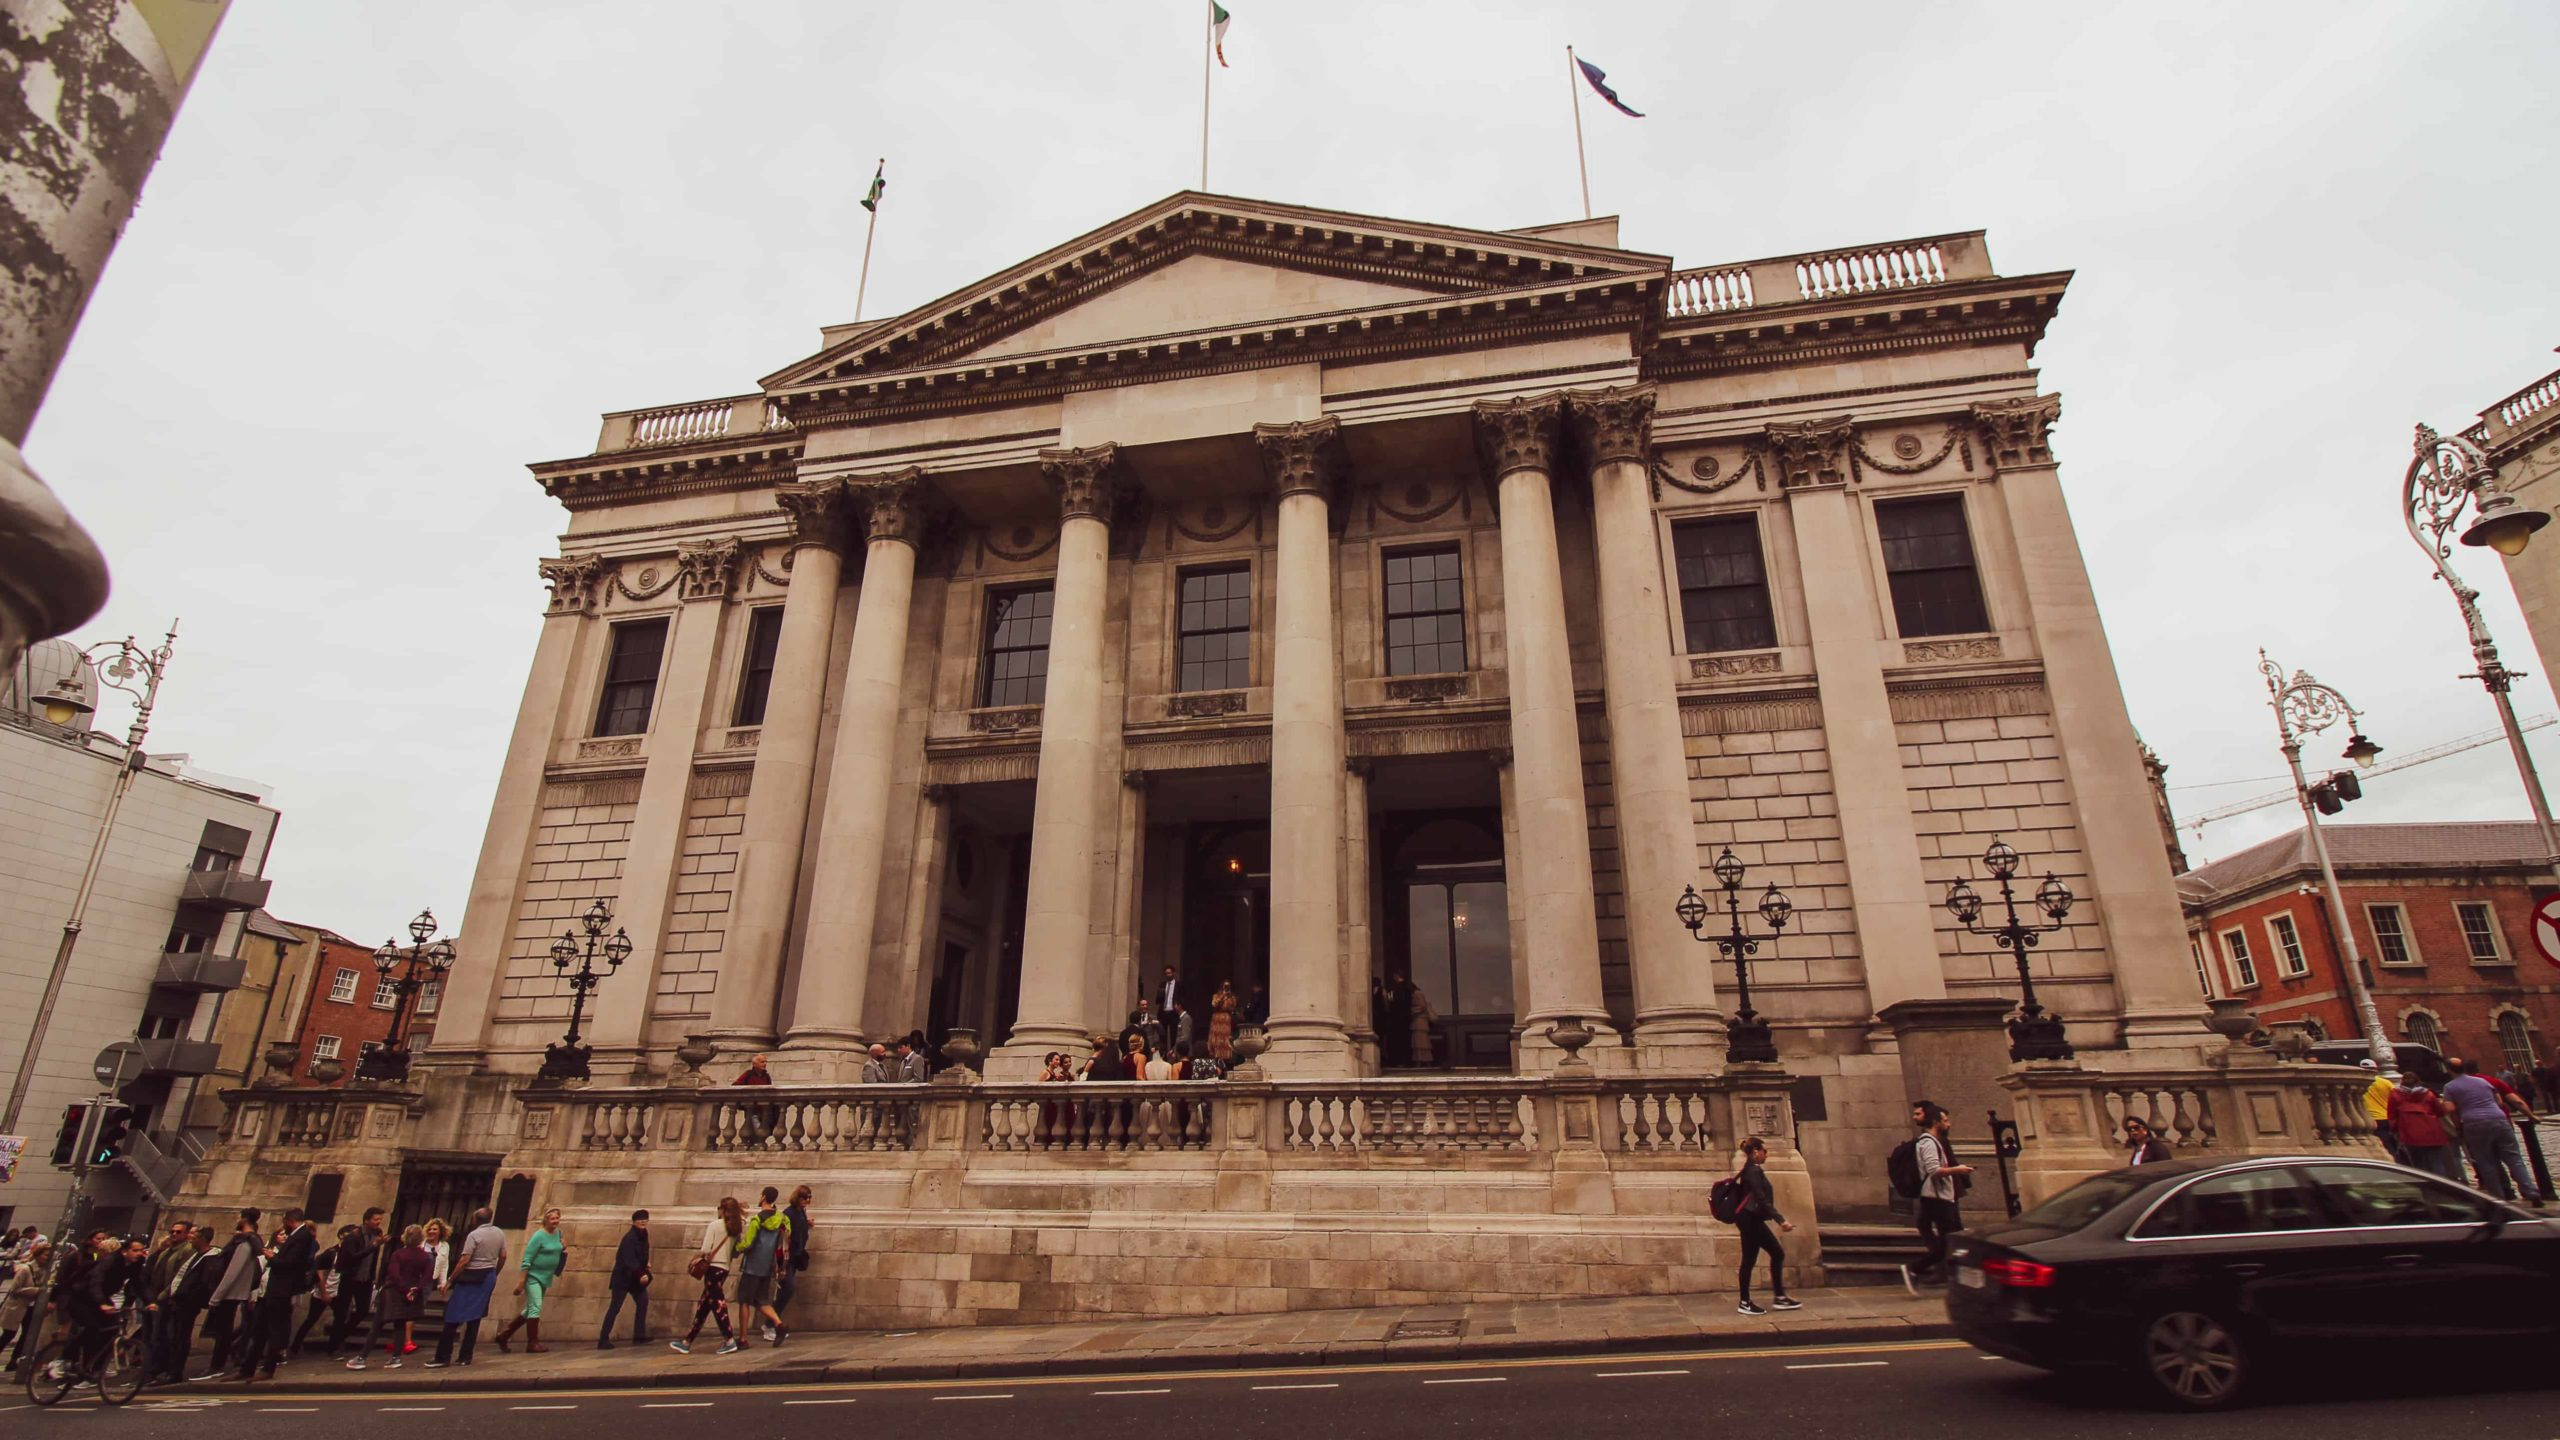 dublin 2 day itinerary - dublin city hall